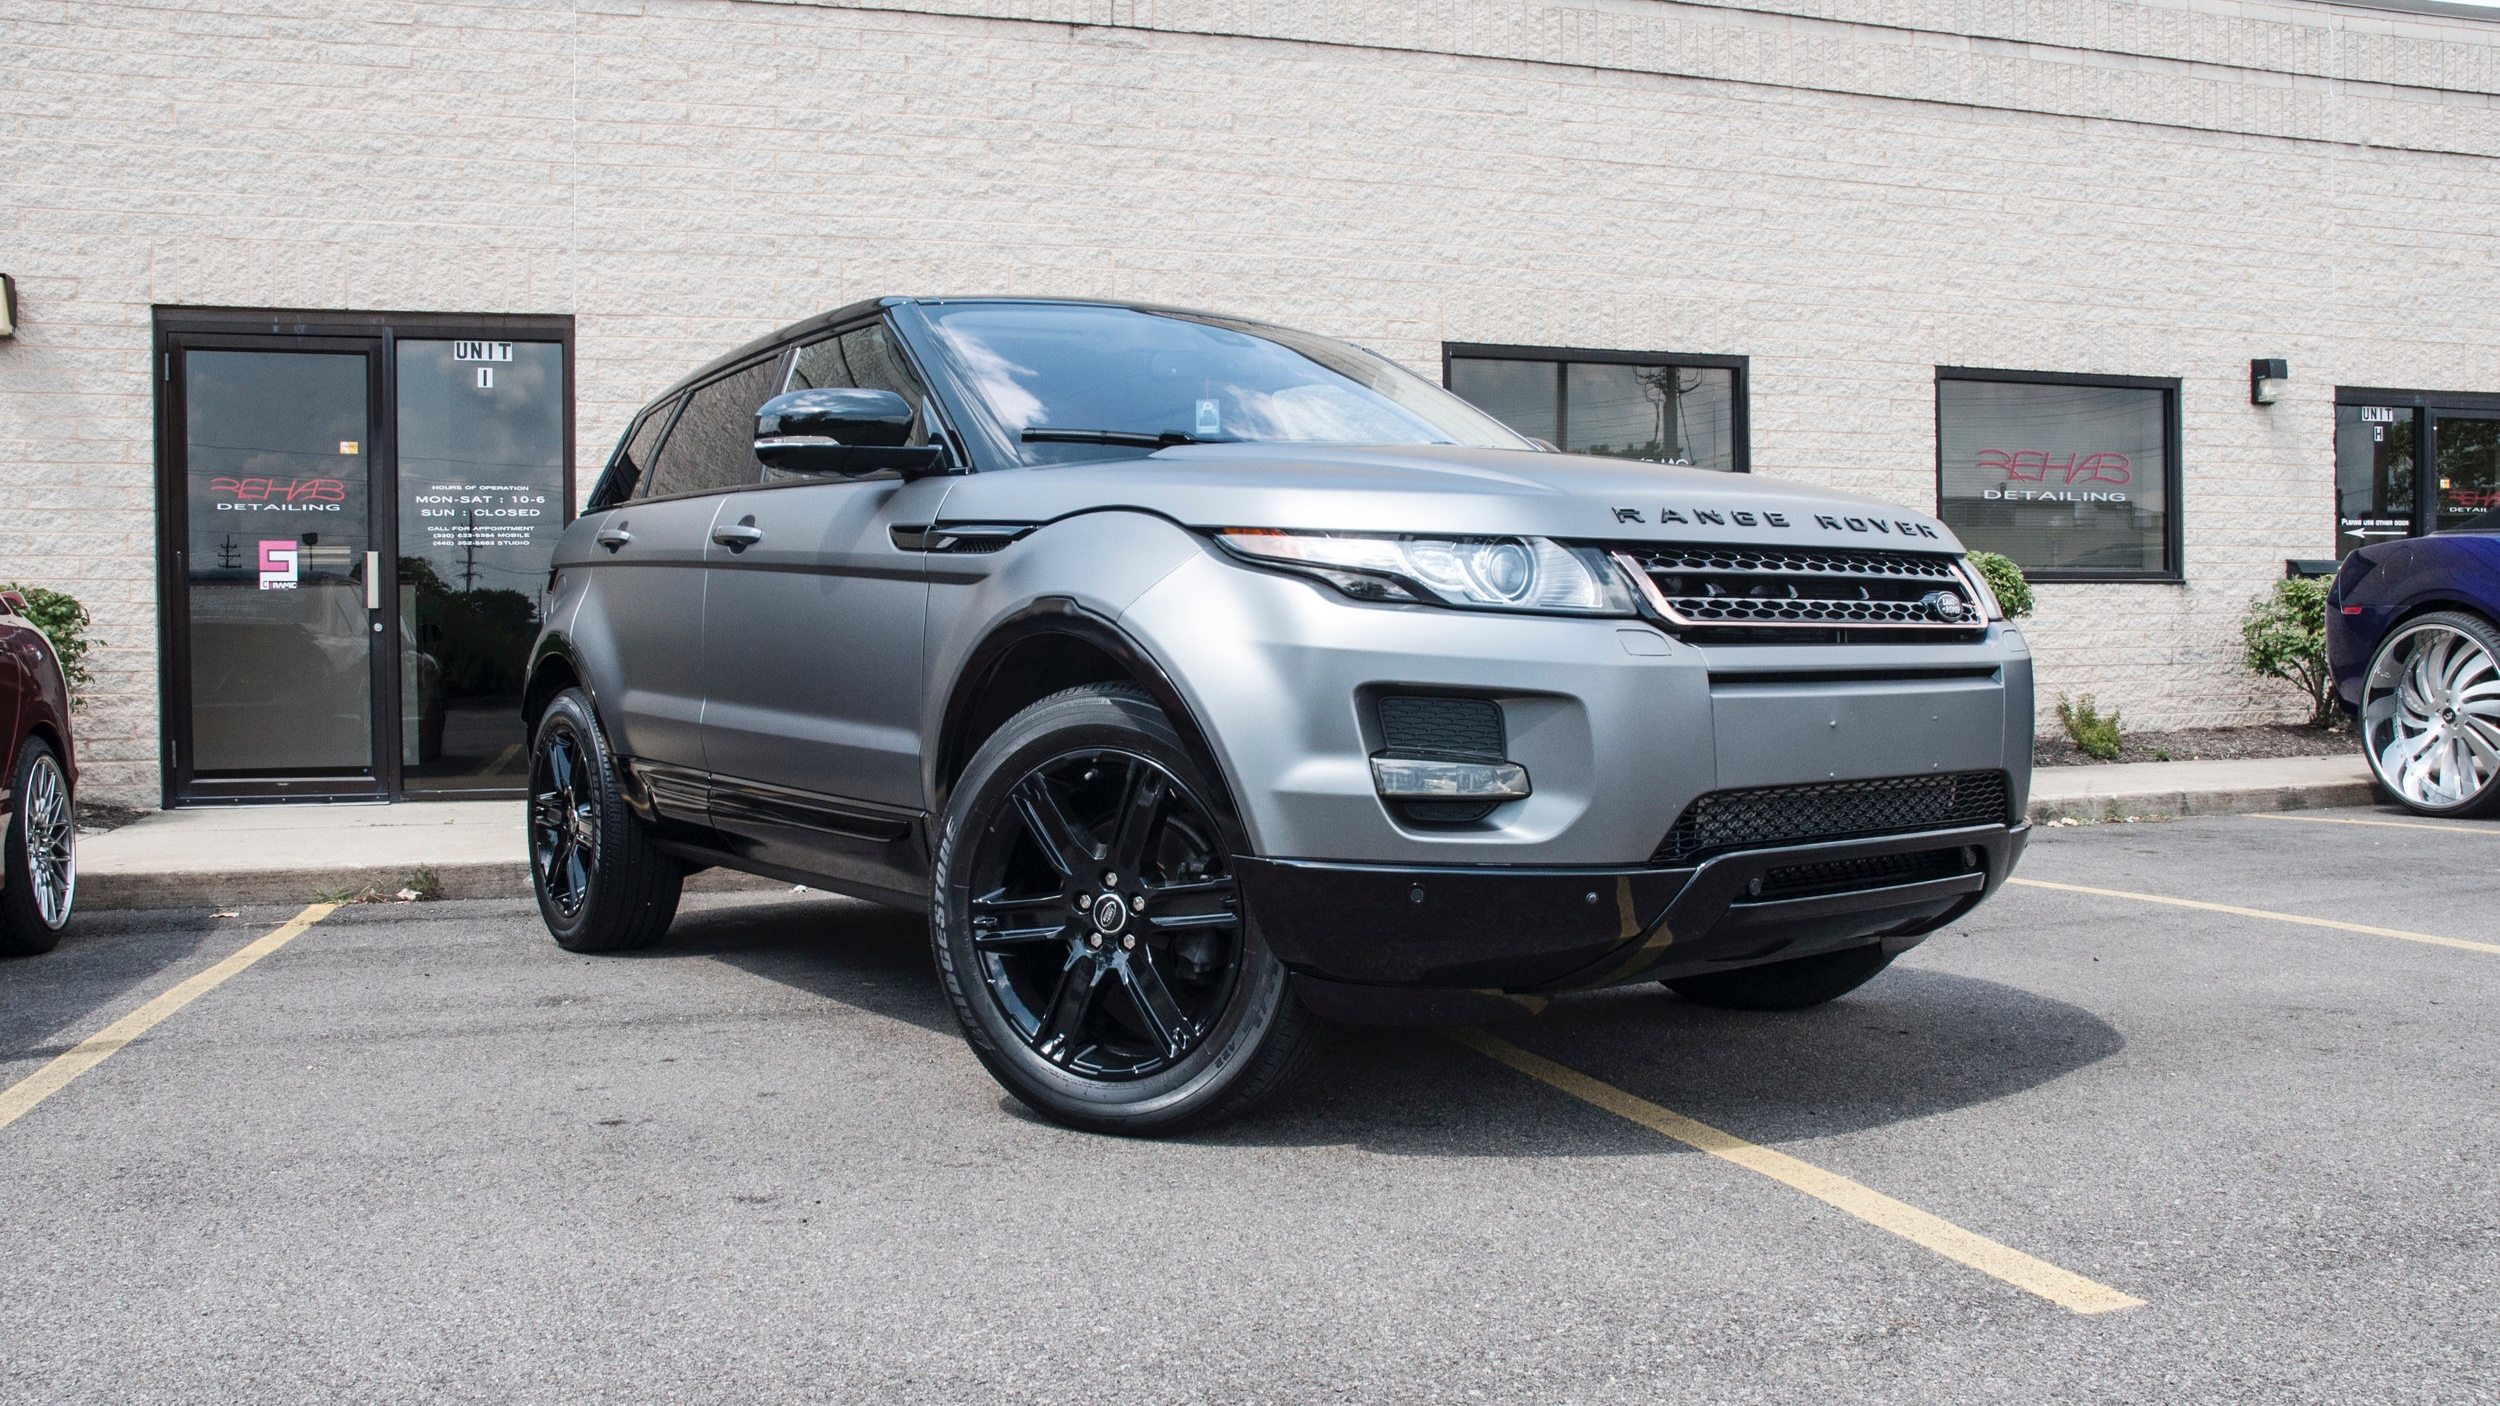 Victoria Beckham Edition Evoque (Clone) - Wrapped in Oracal Matte Grey Metallic, Wheels and Moulding Refinished